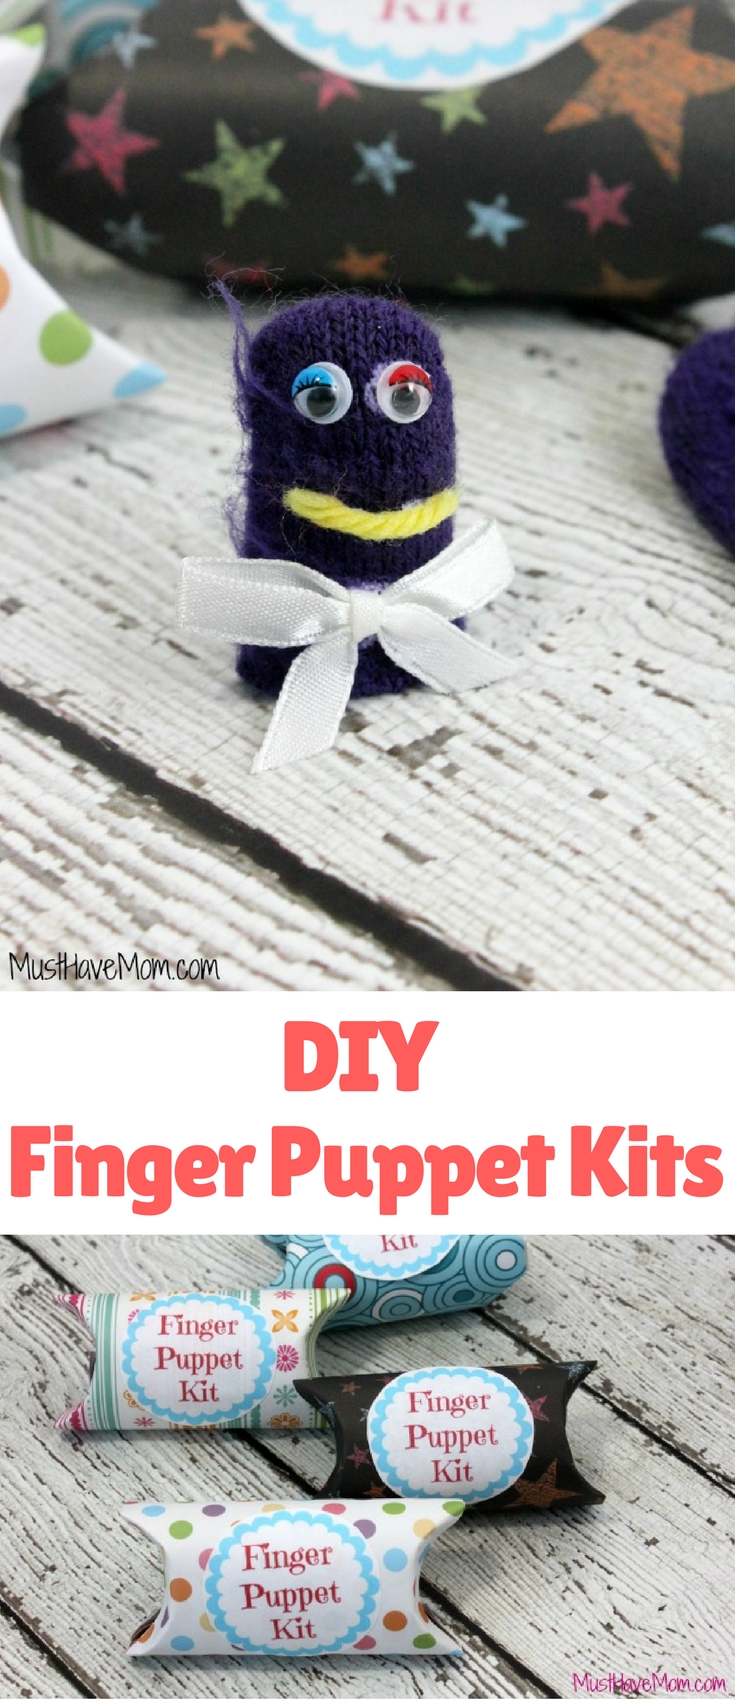 I made these adorable DIY Finger Puppet Kits with the kids this week and they were a HUGE hit! They were so much fun, even I enjoyed making these cute little finger puppets.